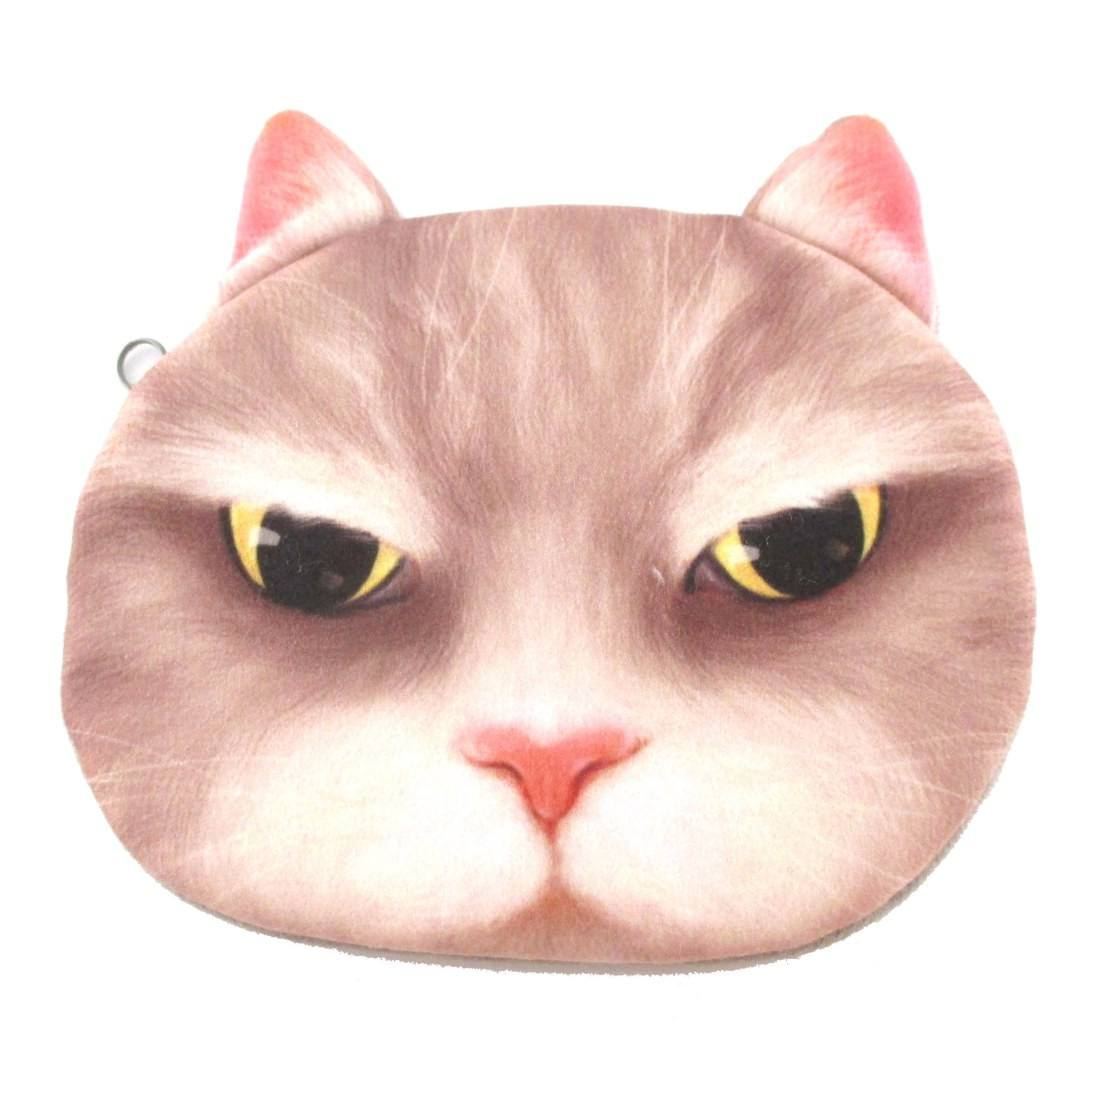 Super Grumpy Kitty Cat Head Shaped Coin Purse in Grey